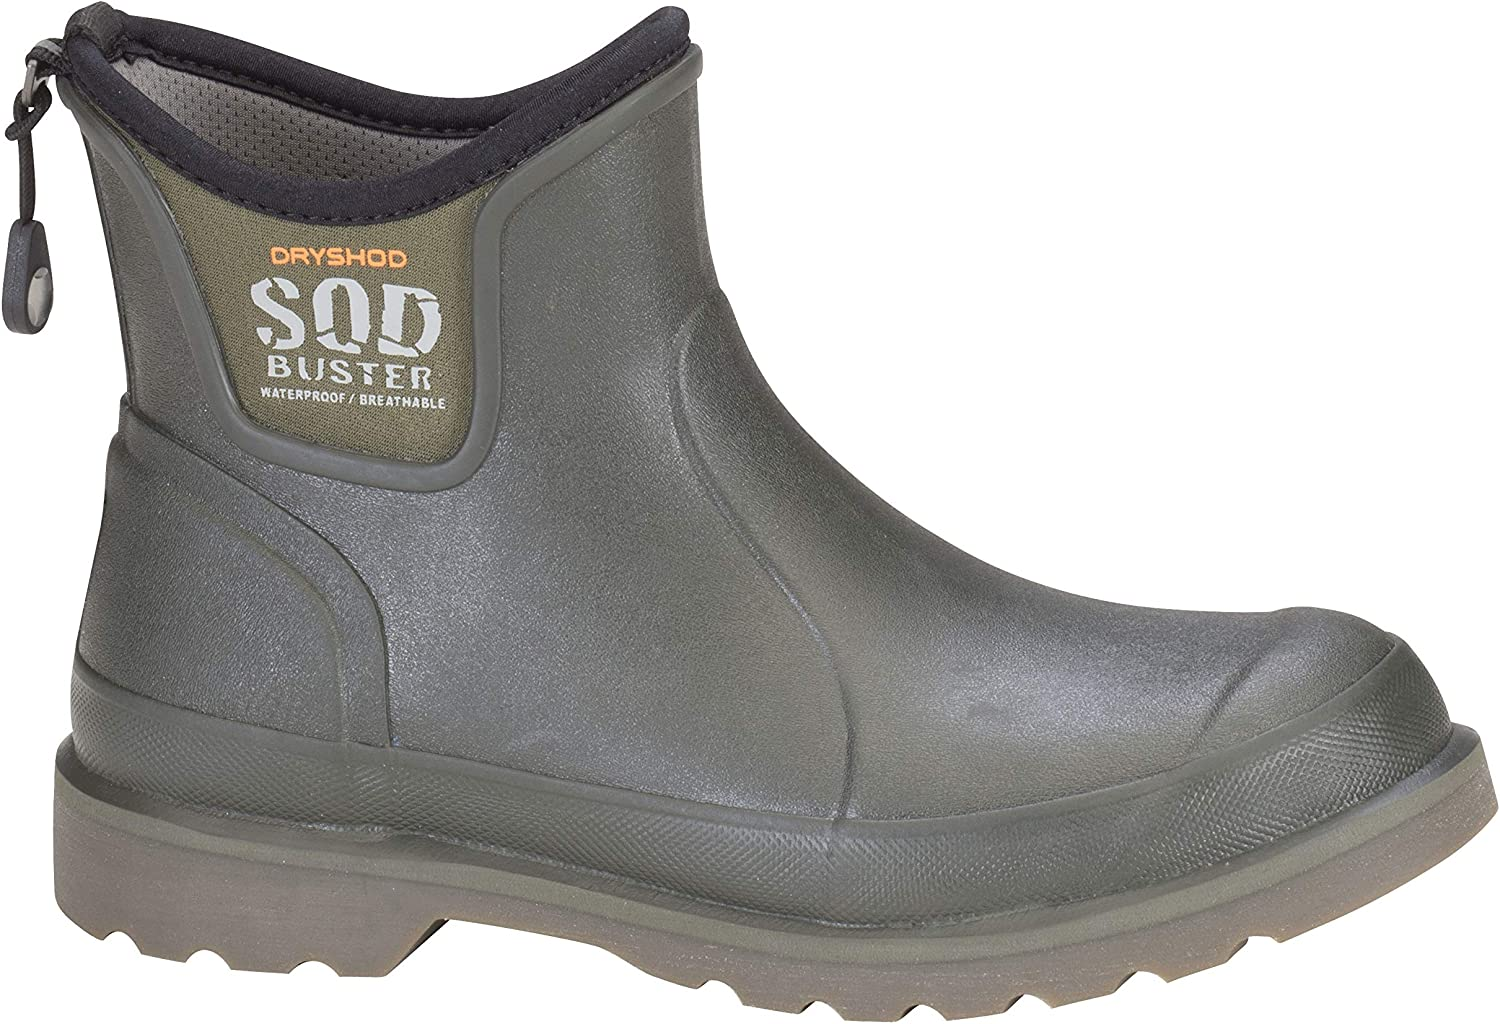 Dryshod Men's Sod Buster Ankle Moss Outdoor and Garden Boot SDB-MA-MS